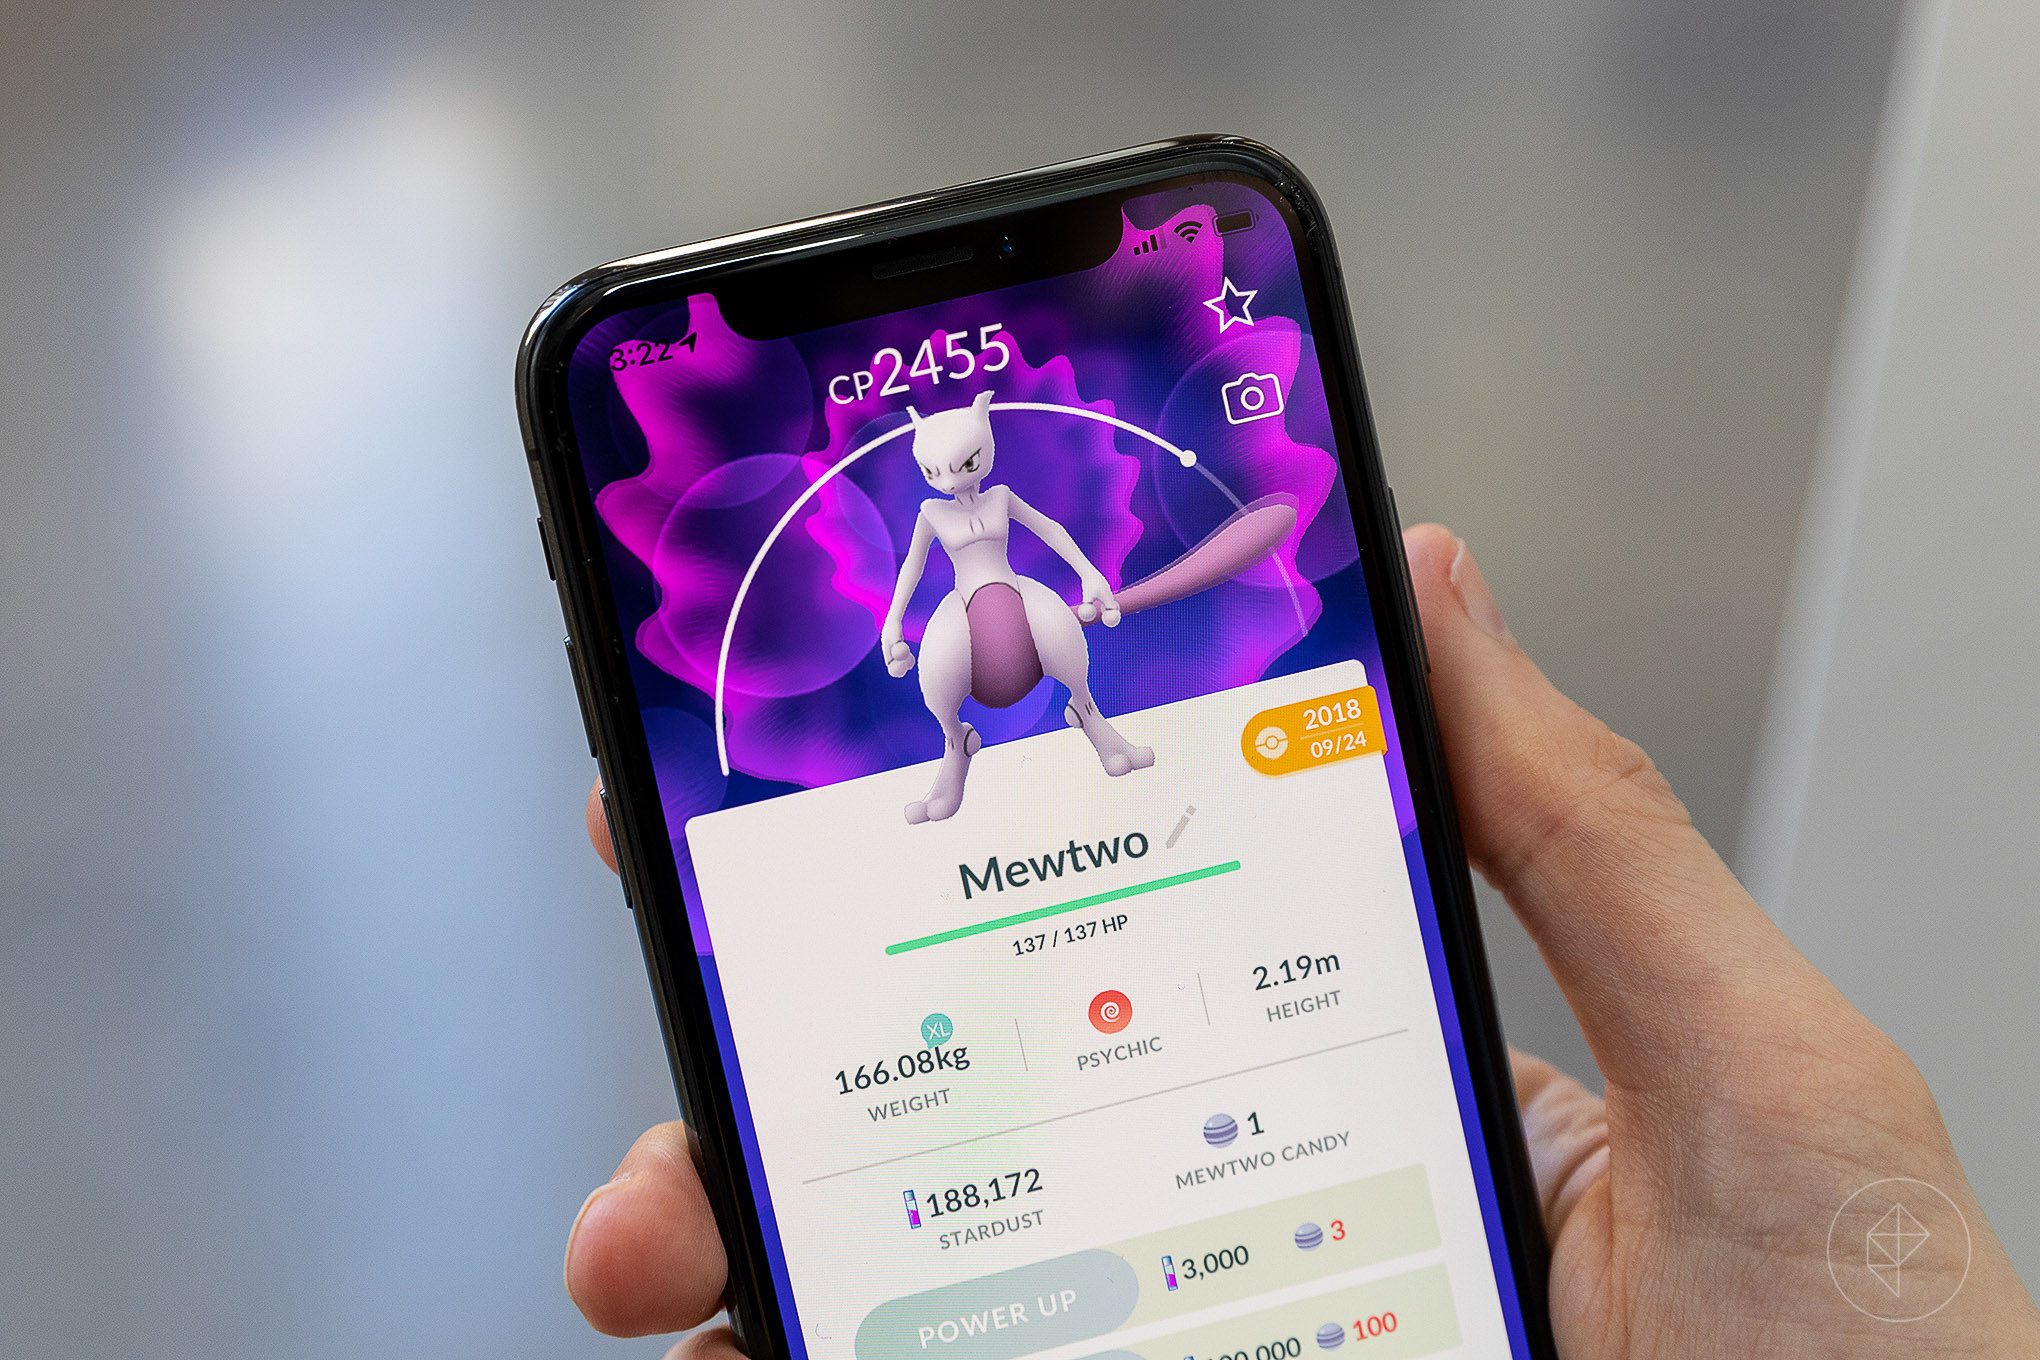 Pokémon Go ultra rewards detailed: Shiny Mewtwo, regionals and Generation 5 in September